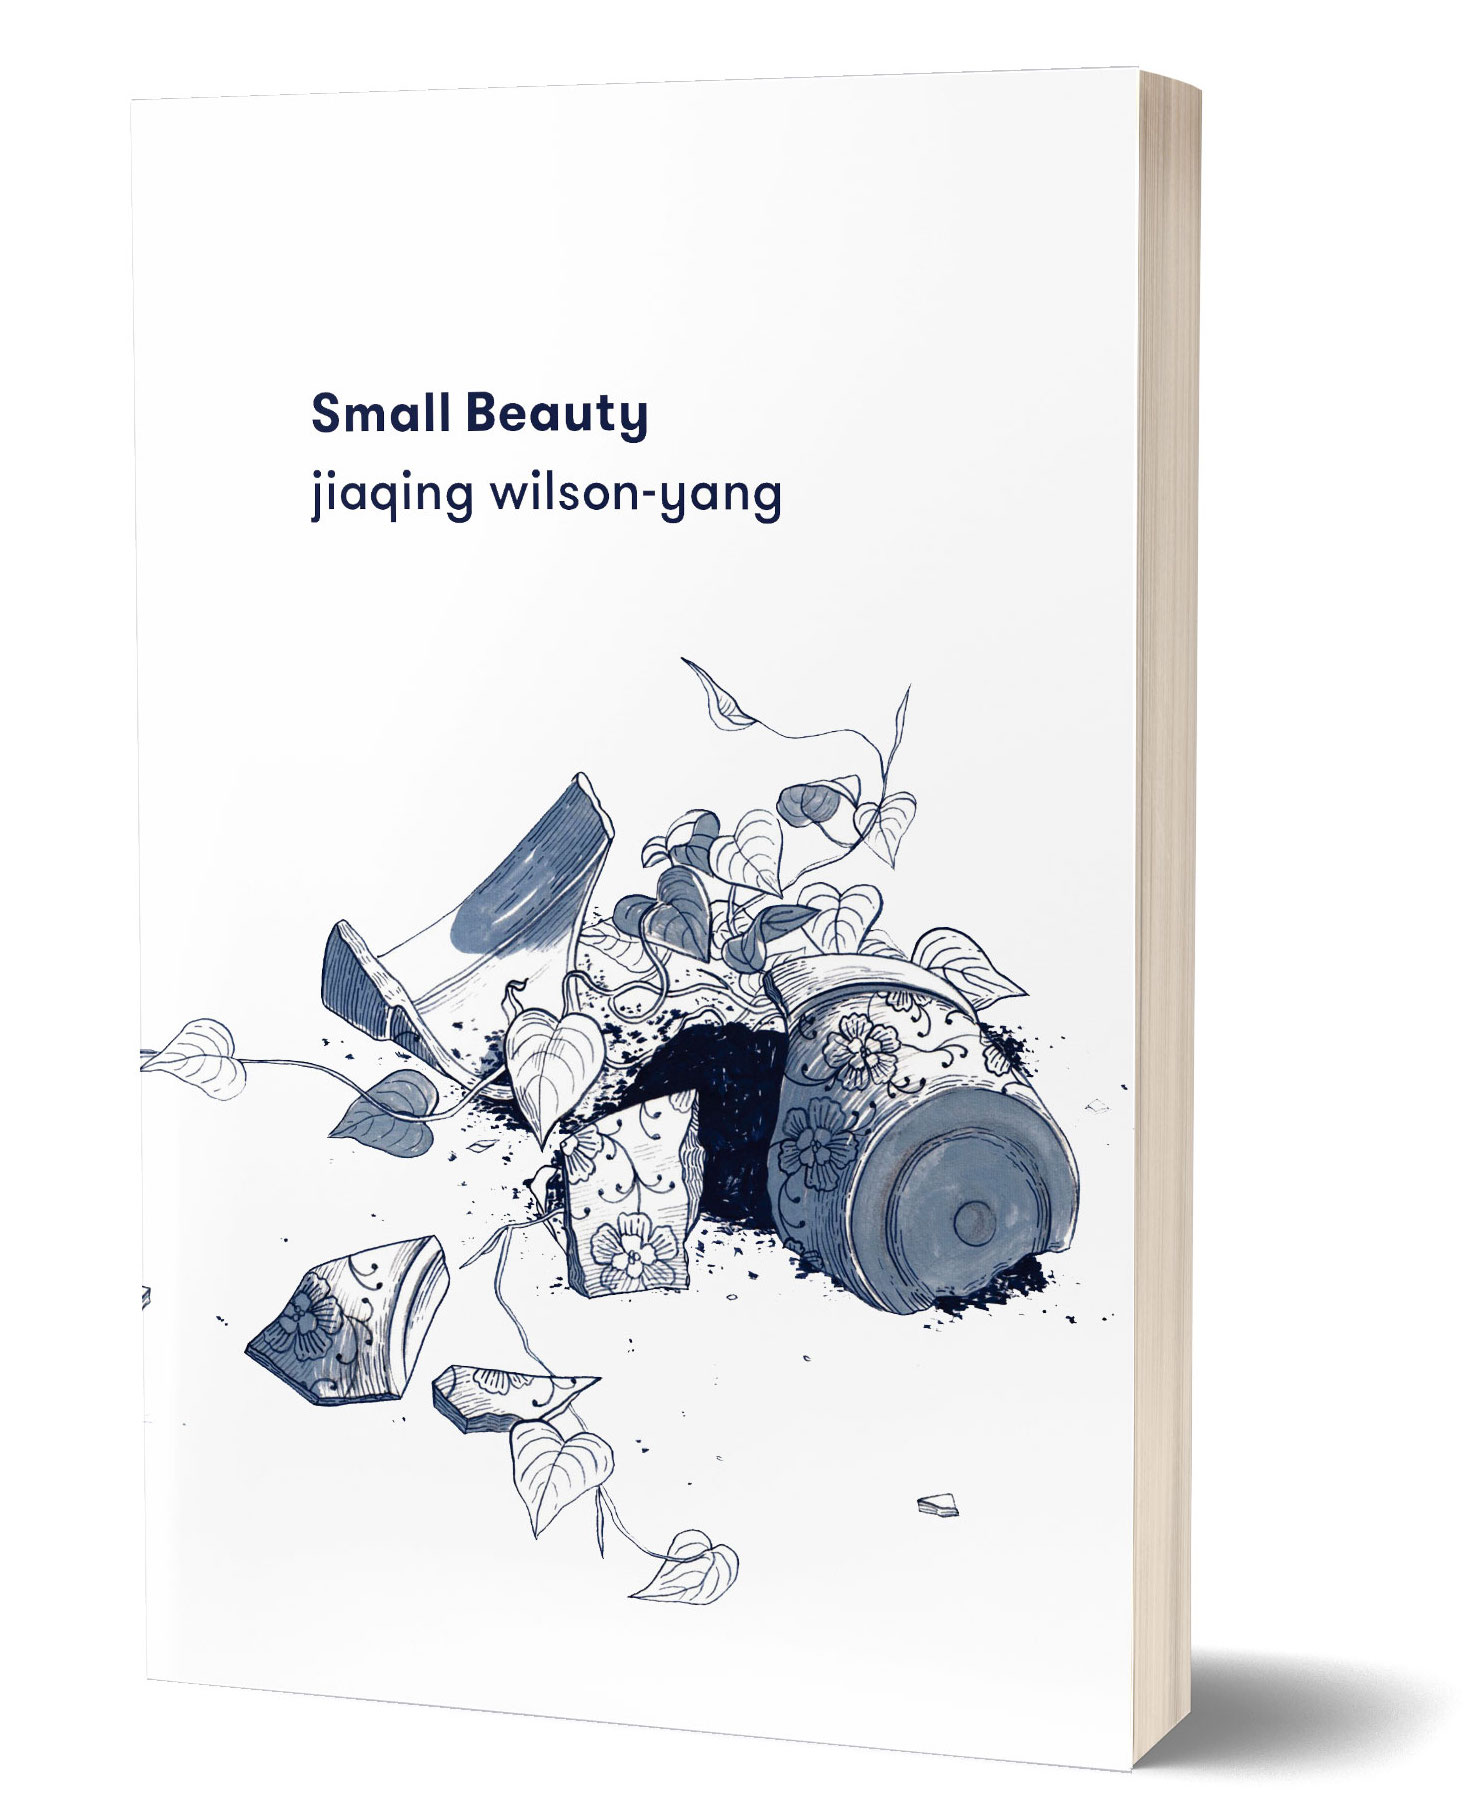 cover art by Lee Lai